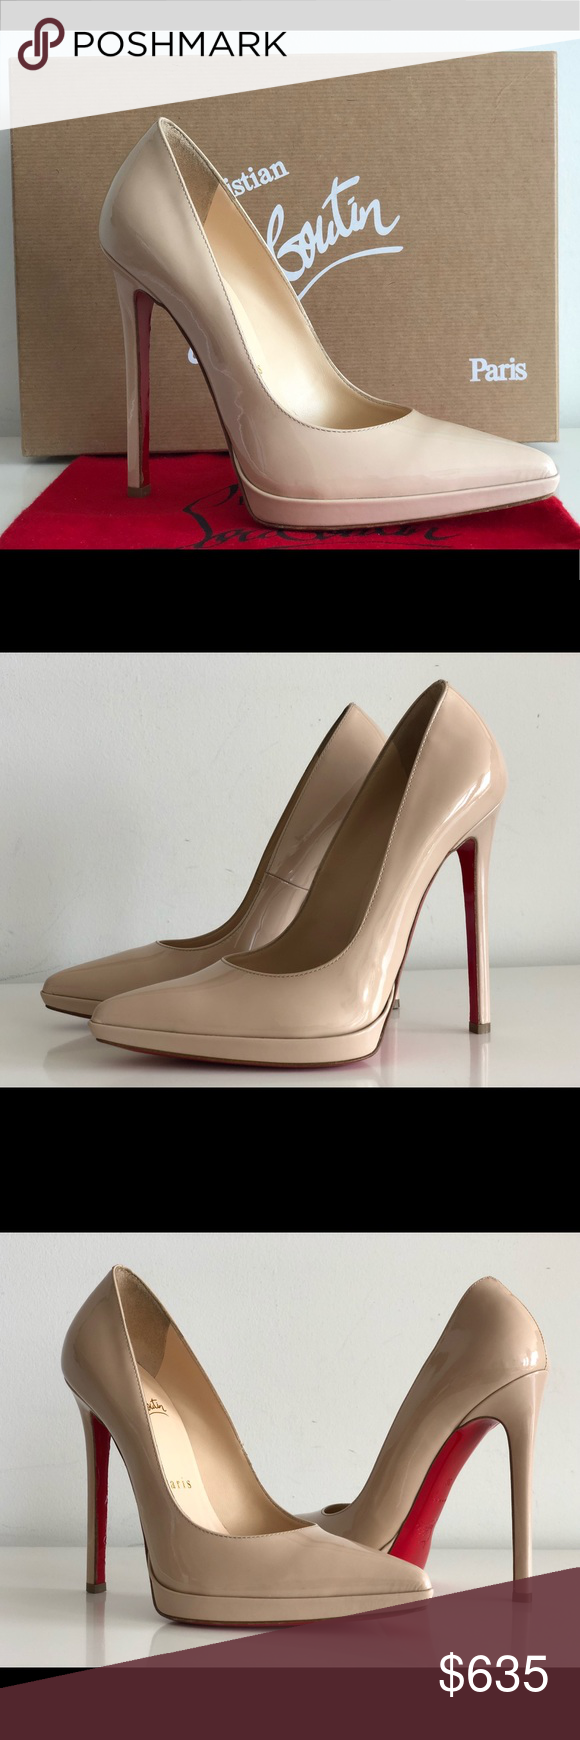 b5b2e911ebba Spotted while shopping on Poshmark  CHRISTIAN LOUBOUTIN PIGALLE PLATO 120  NUDE PATENT!  poshmark  fashion  shopping  style  Christian Louboutin  Shoes